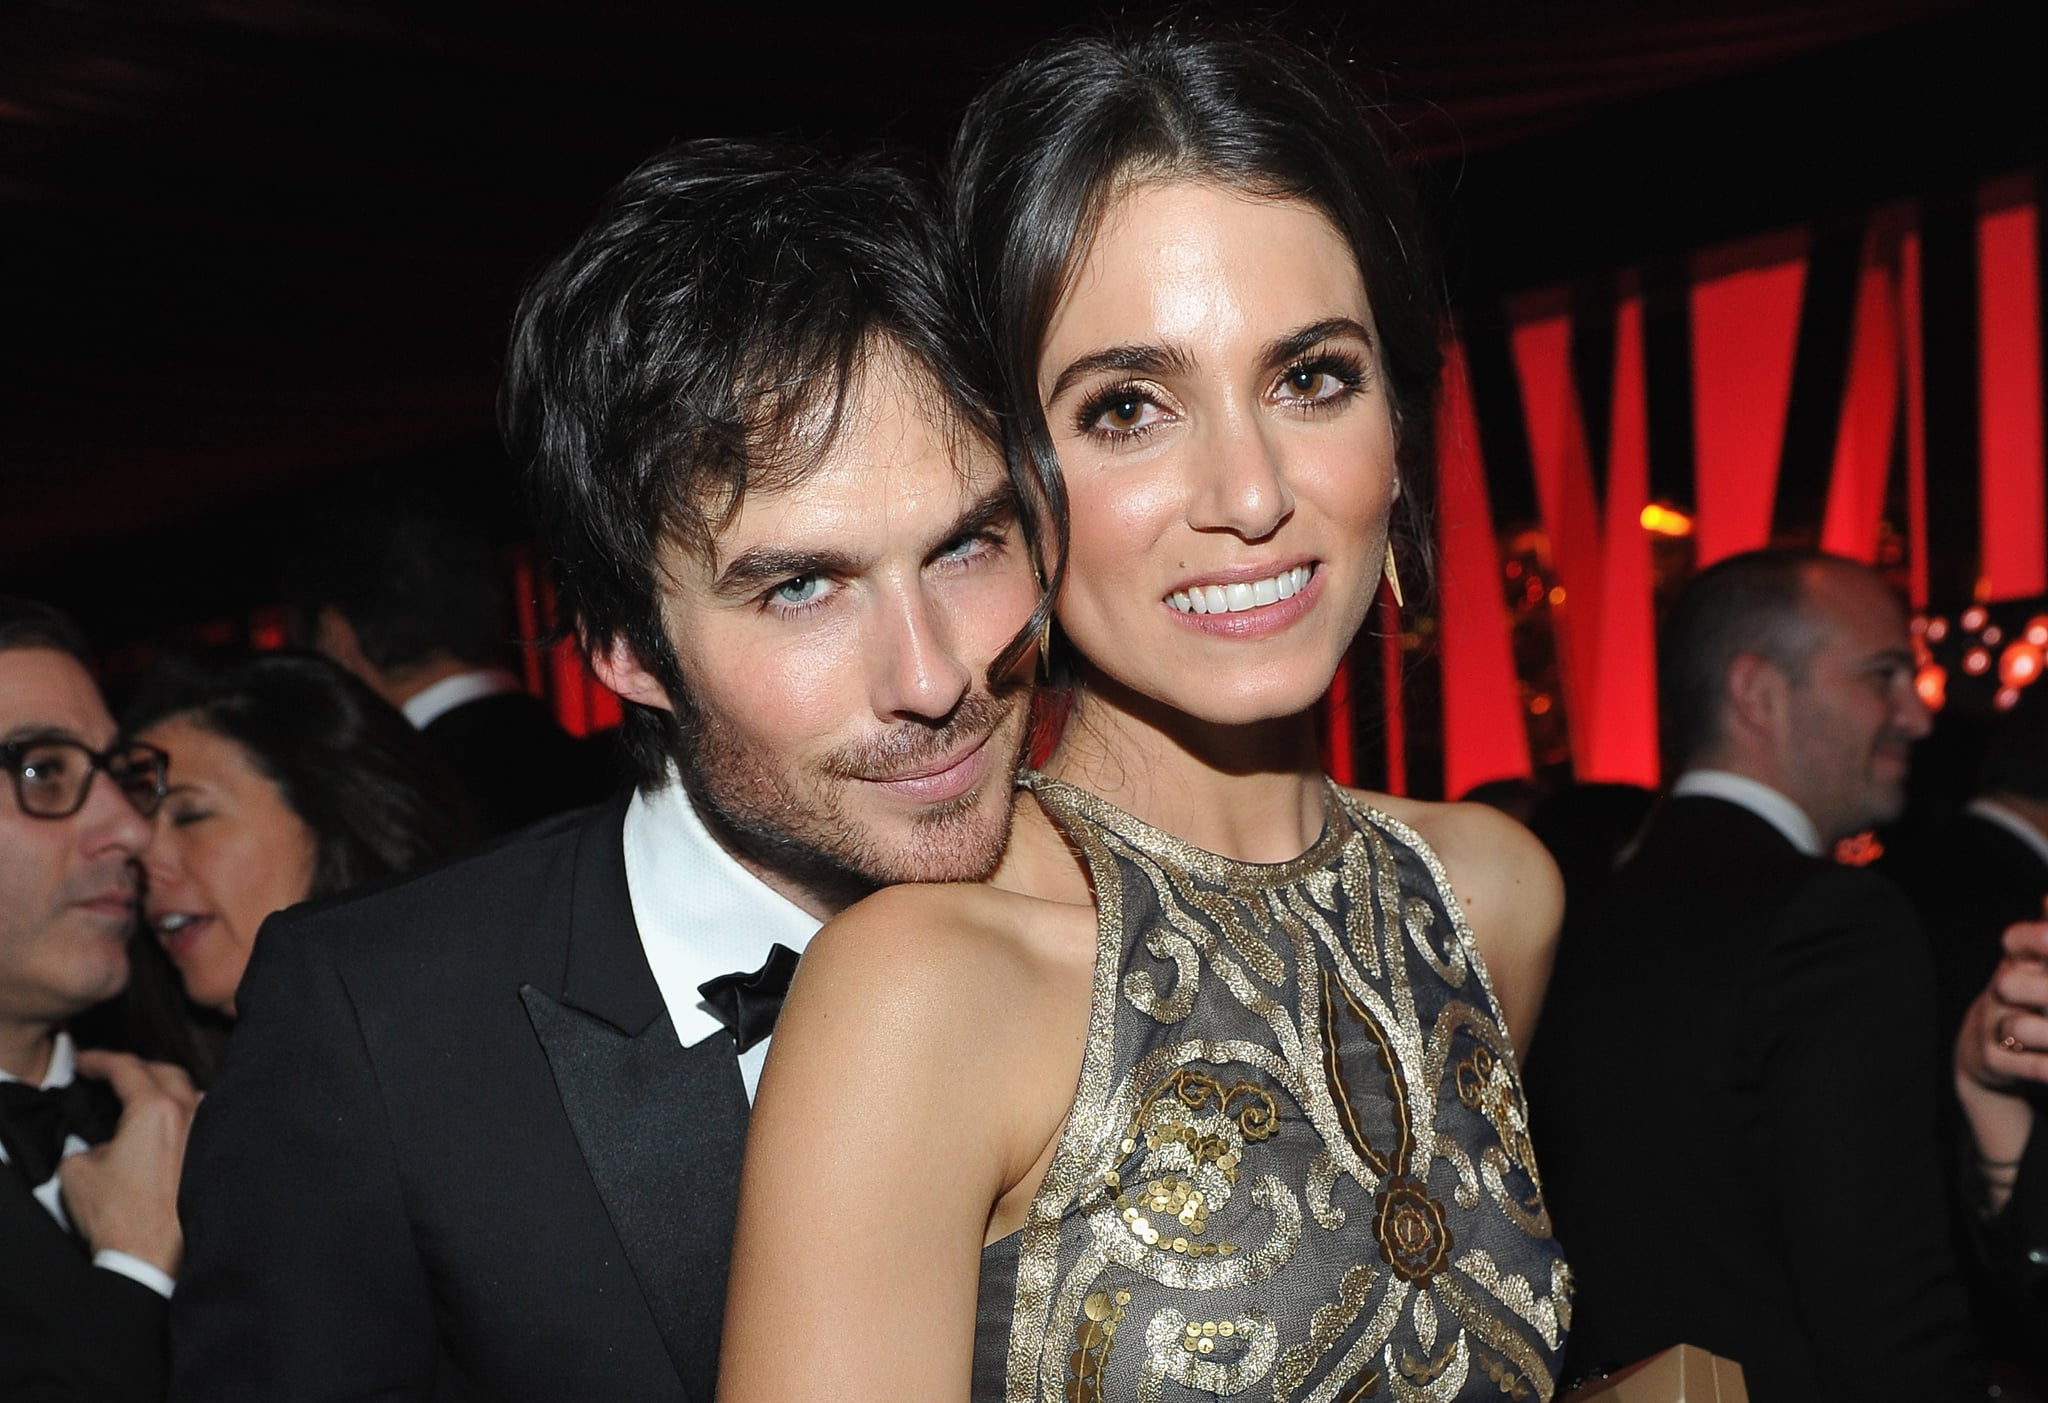 Ian Somerhalder Wrote a Sweet Note to Nikki Reed After the Birth of Their Baby Girl recommend